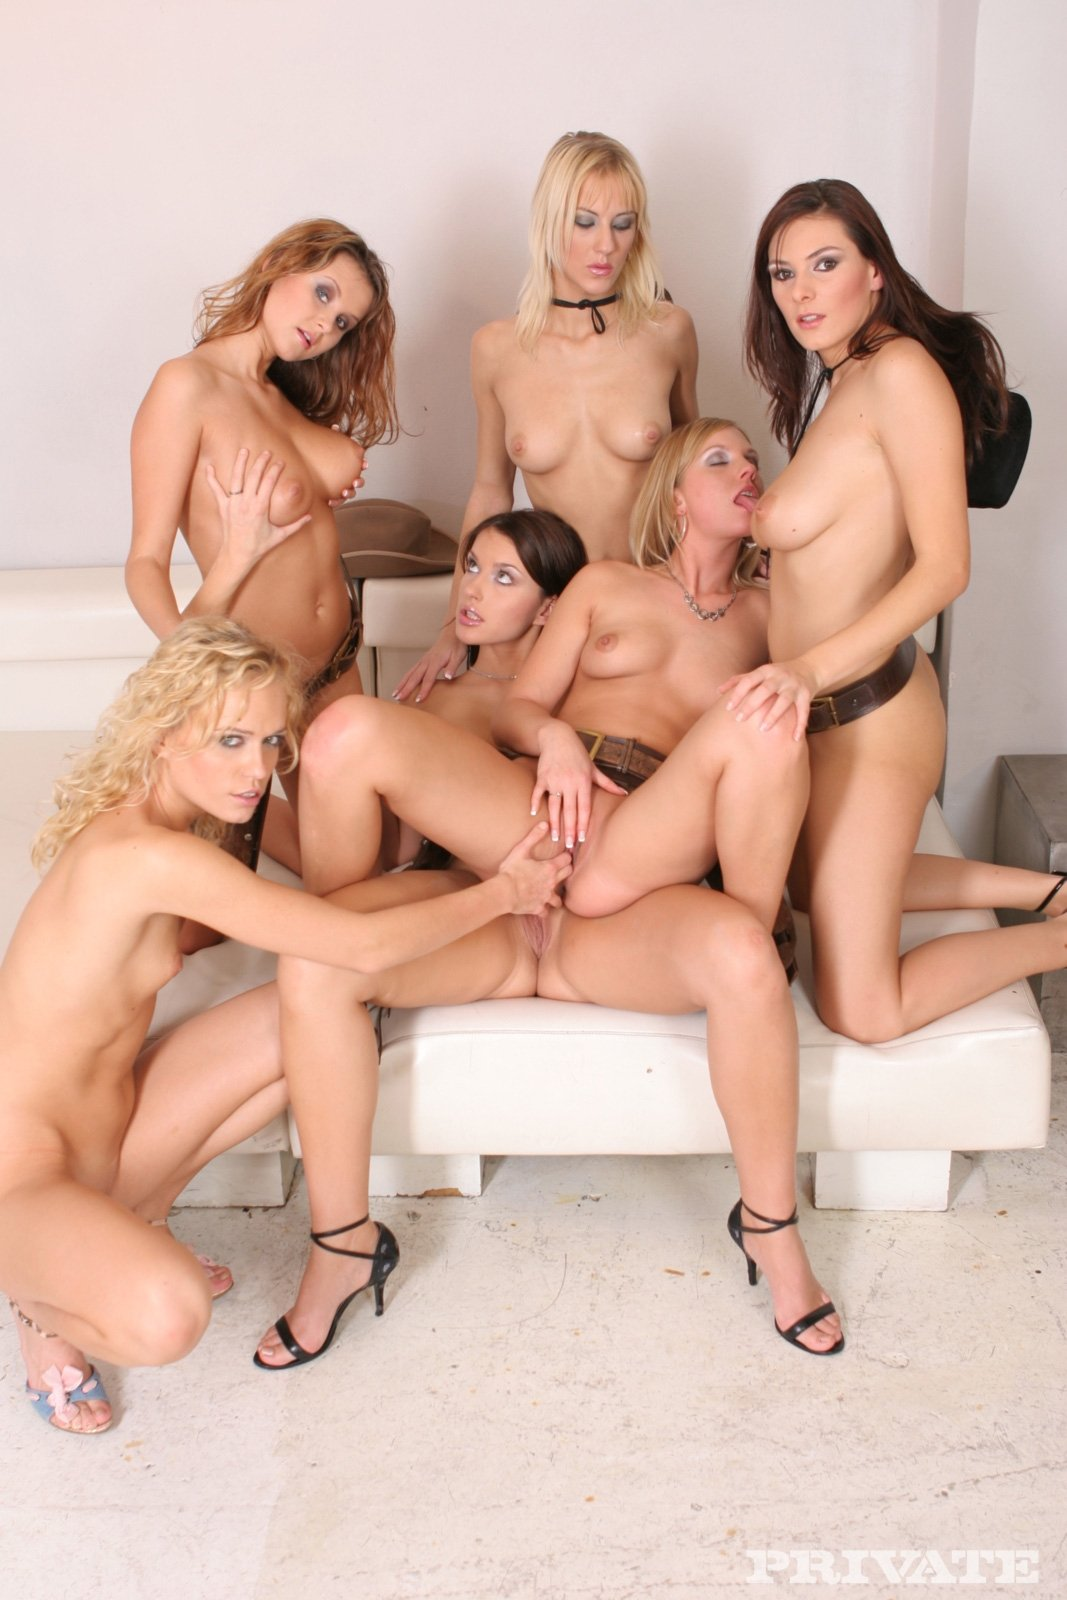 Candace Von And Crystal Clear All Girl Orgy Free Porn Images